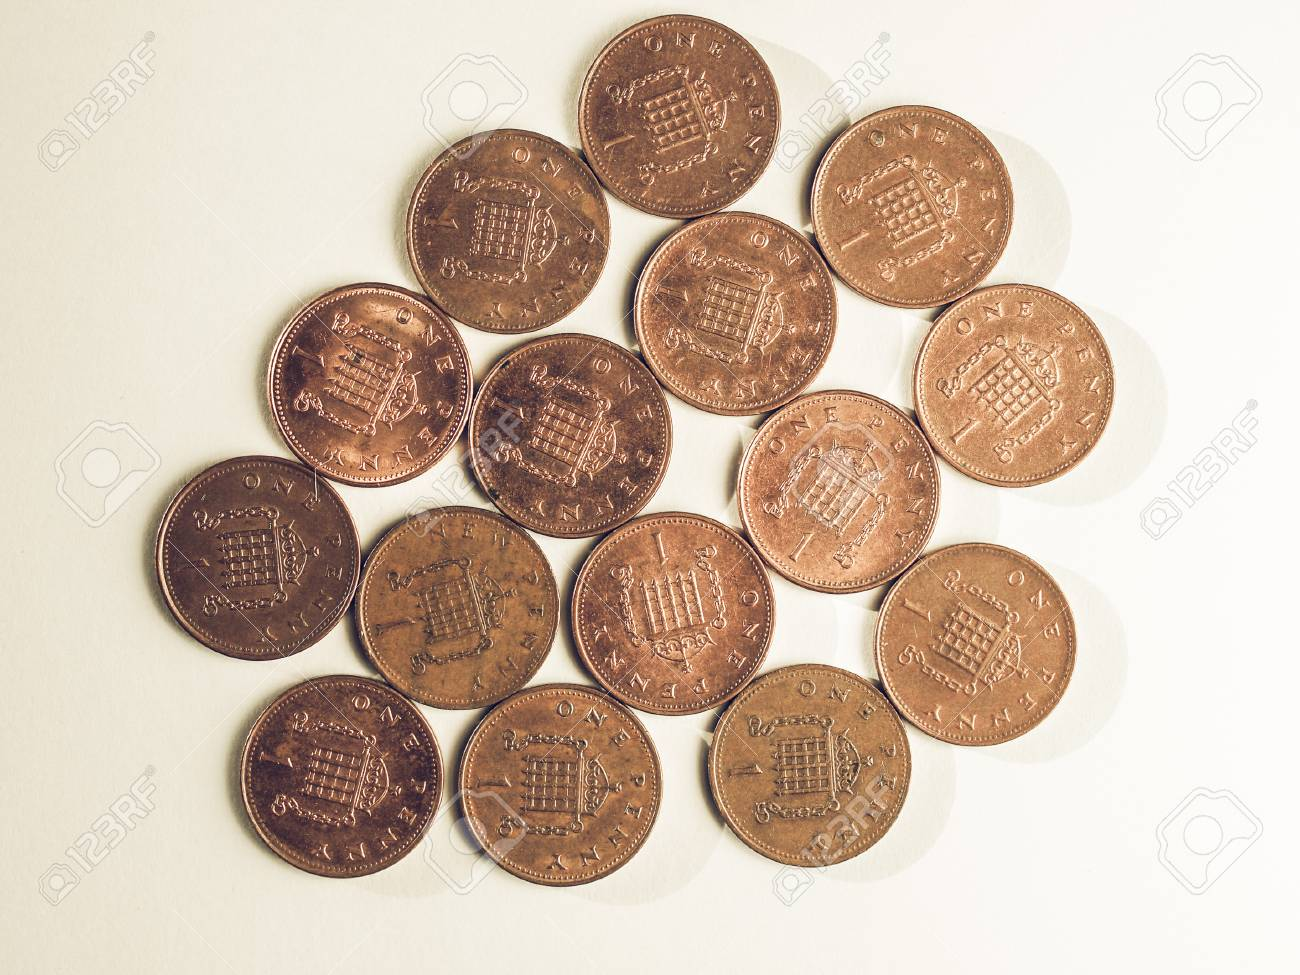 Vintage looking Many One Penny coins currency of the United Kingdom